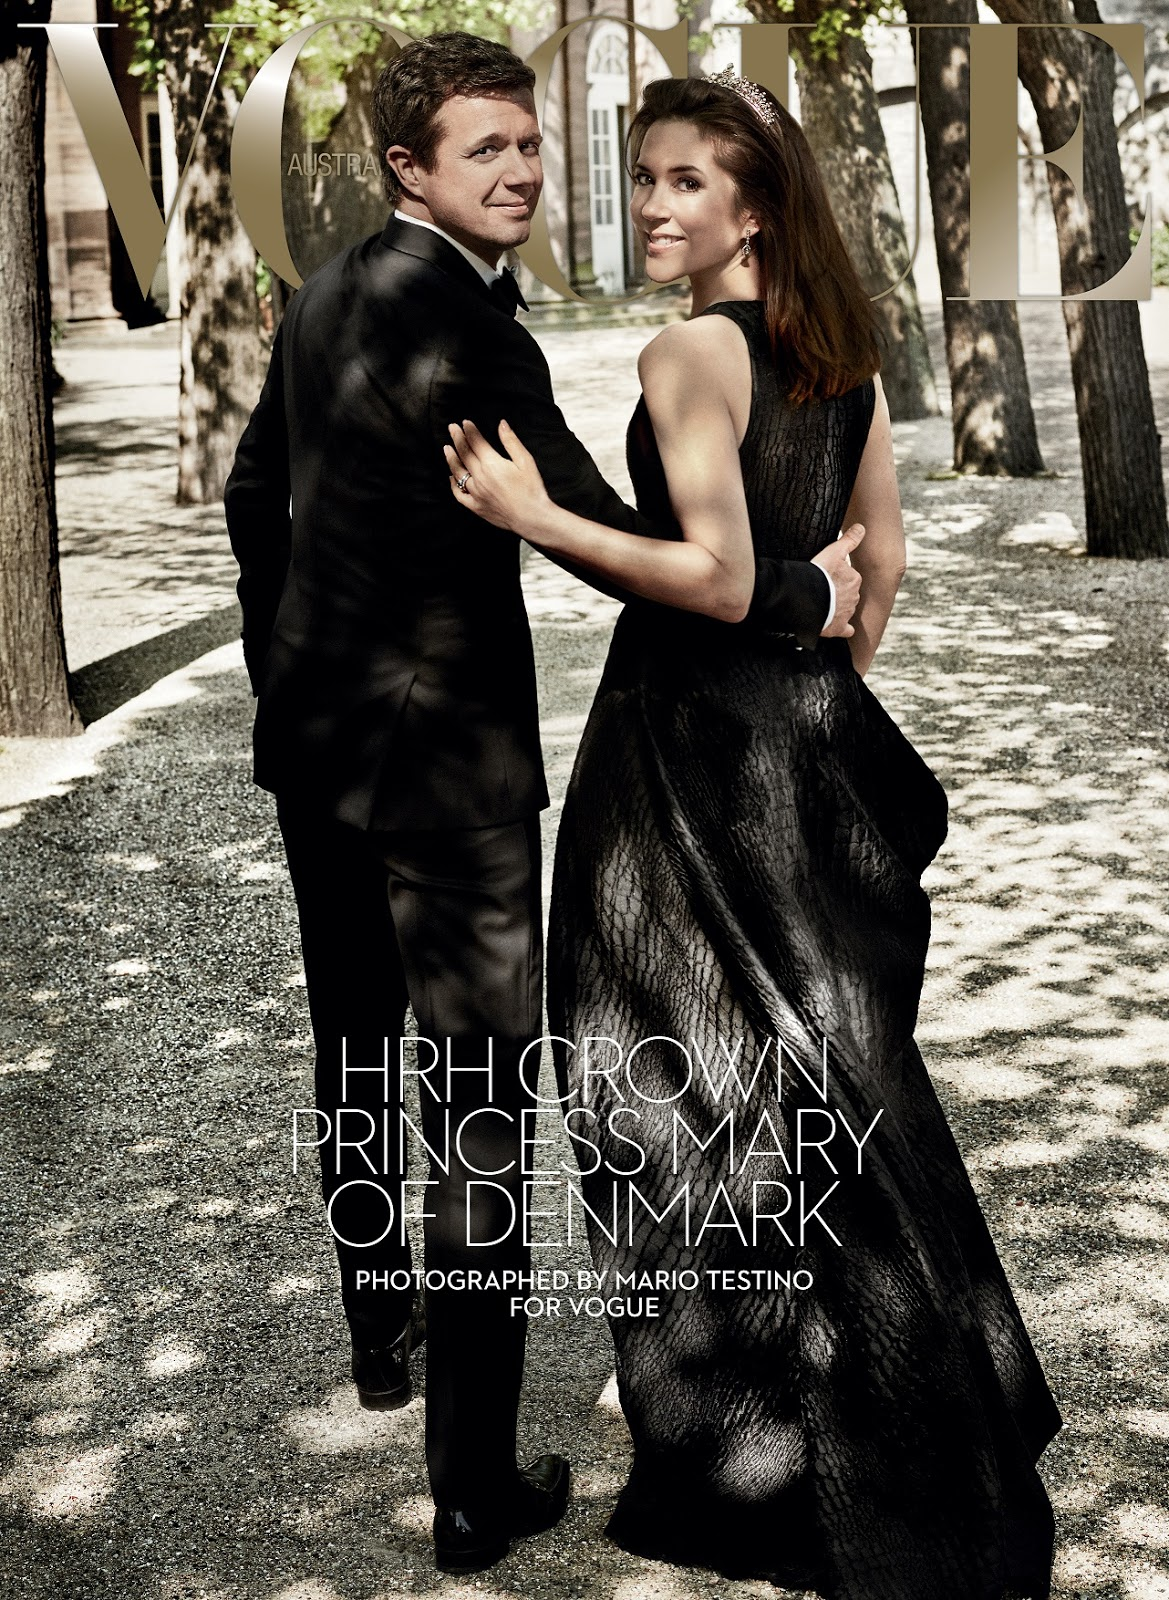 HRH Crown Princess Mary of Denmark covers Vogue Australia August 2016